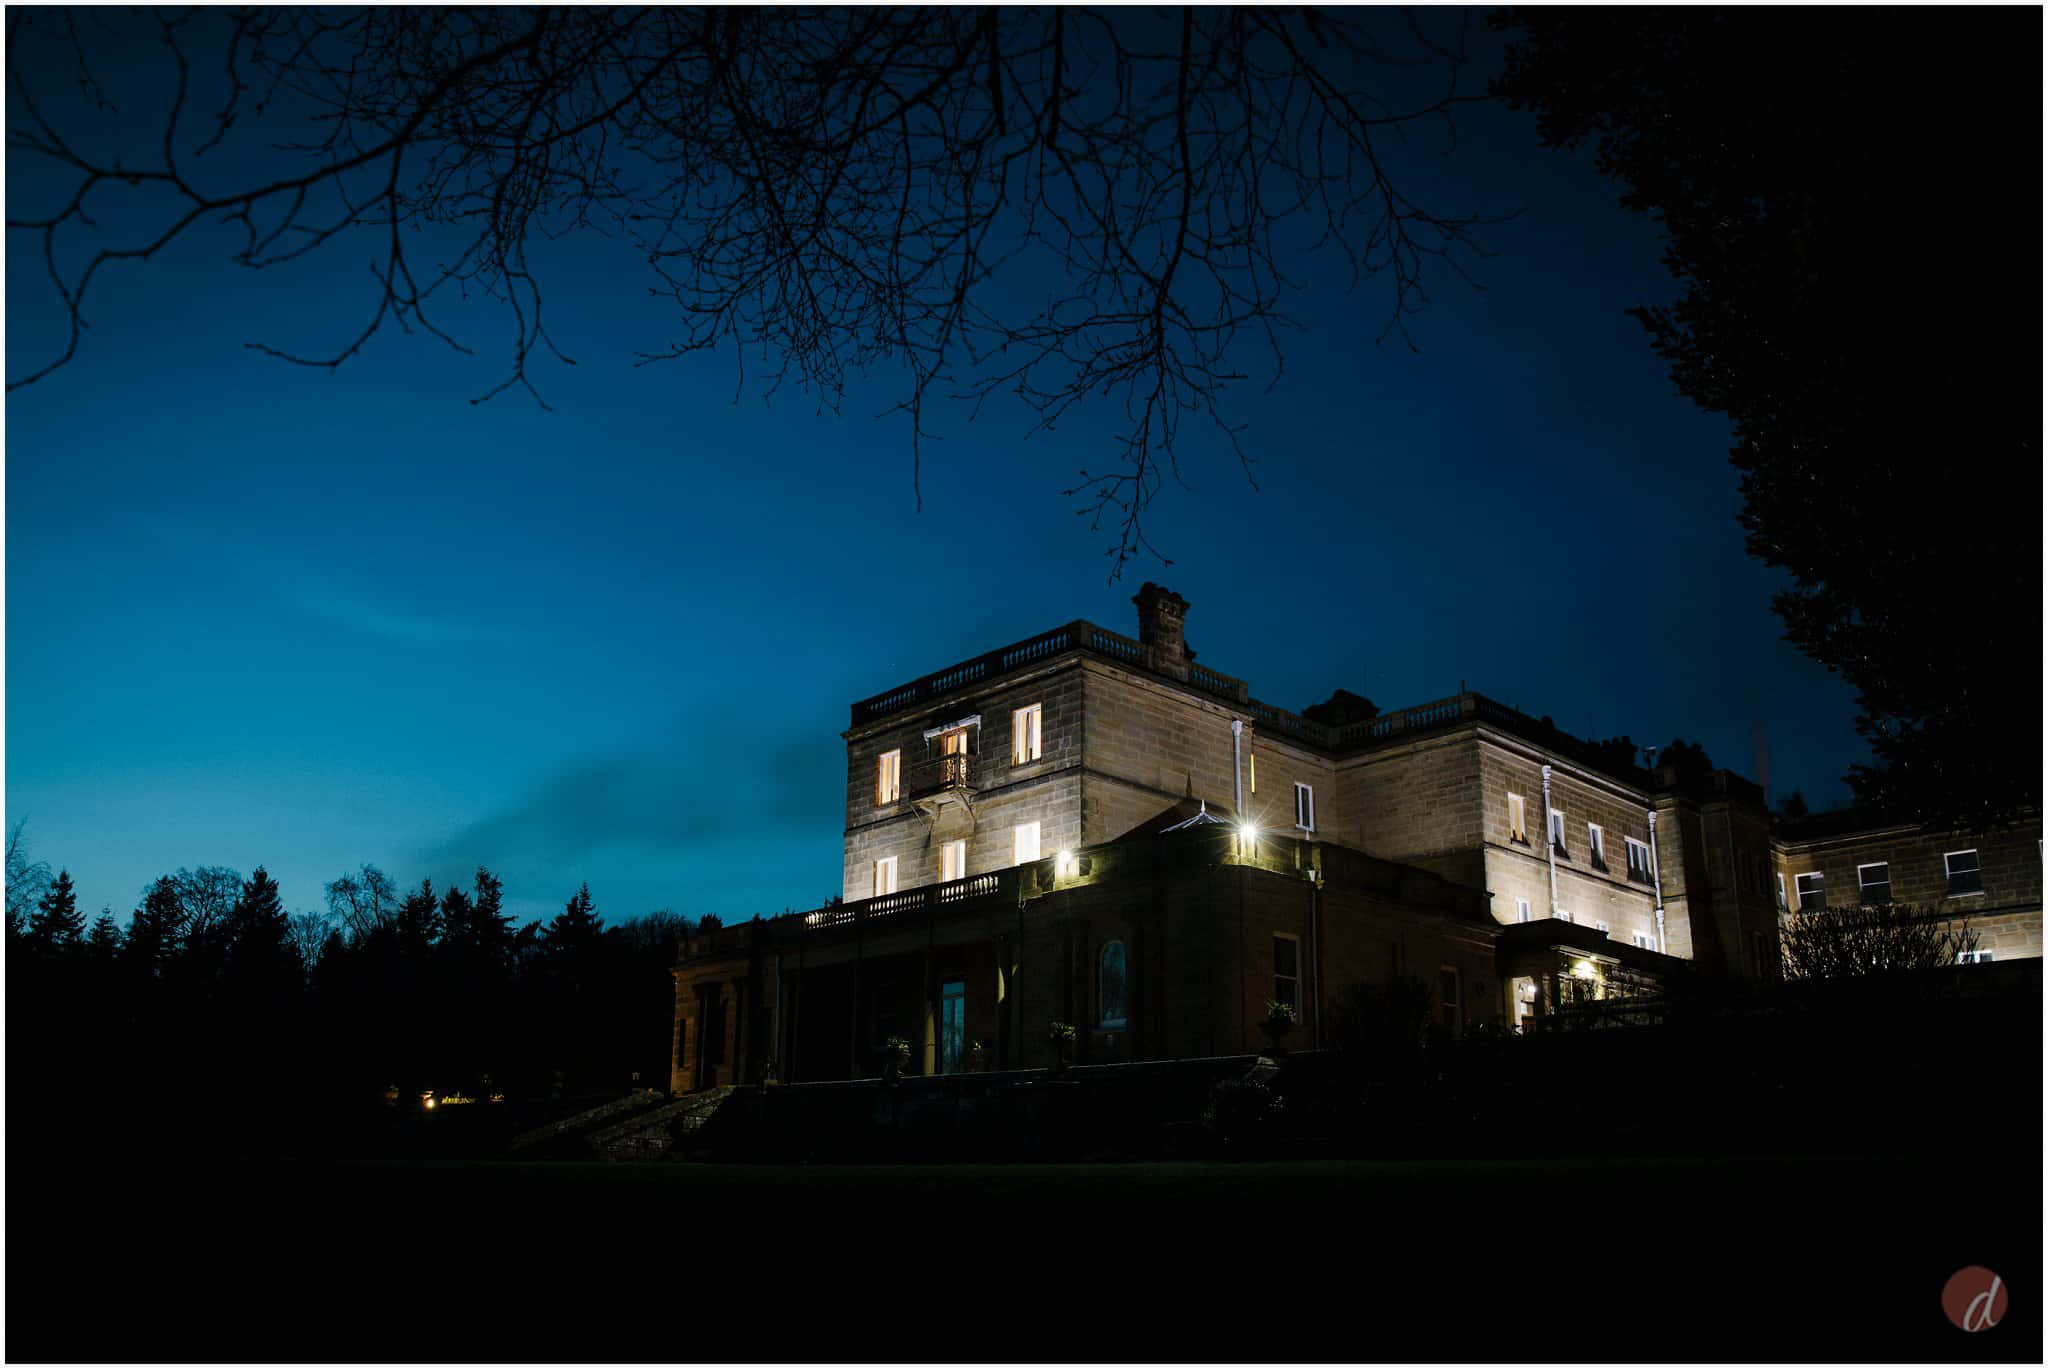 salomons at night